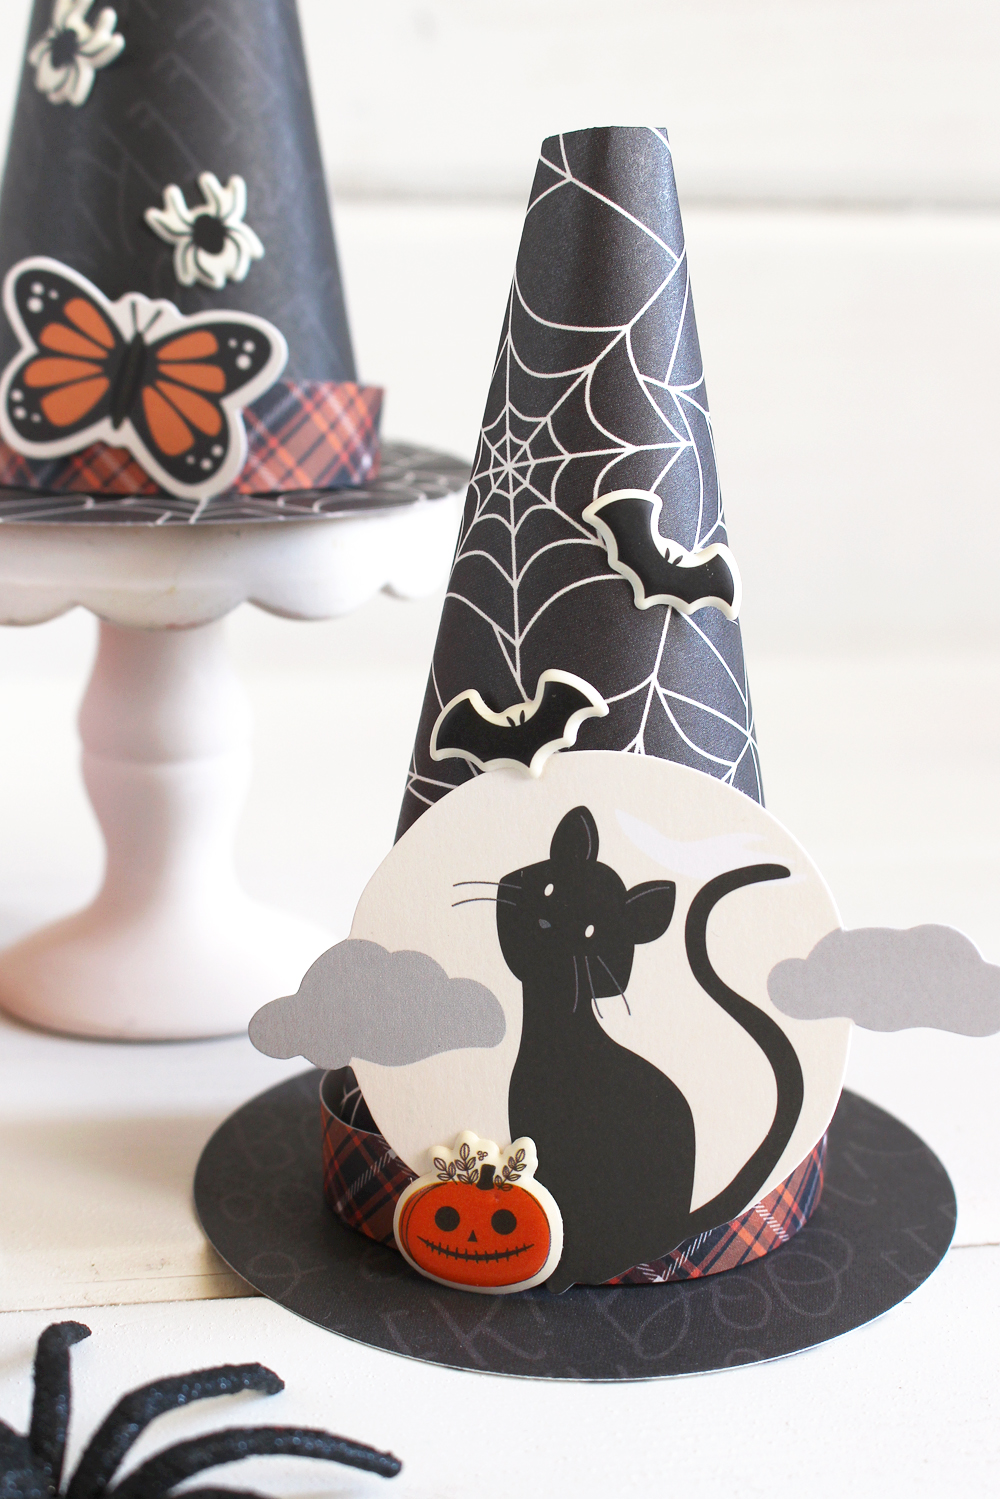 DIY Party Board Witch Hats for Halloween by Kimberly Crawford for We R Memory Keepers